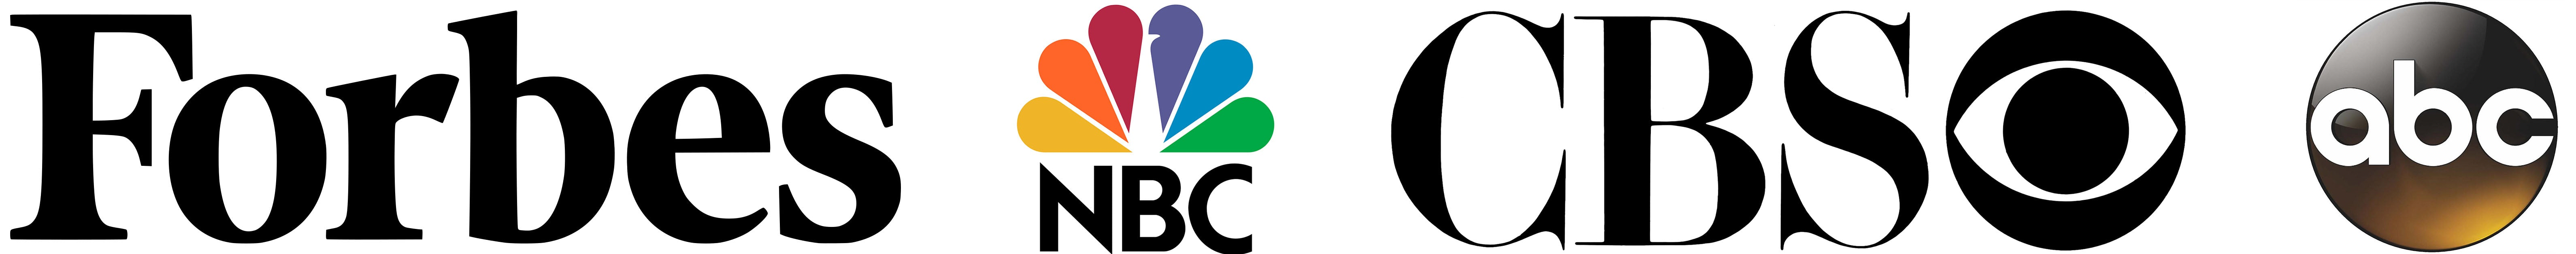 Forbes, NBC, CBS, and ABC